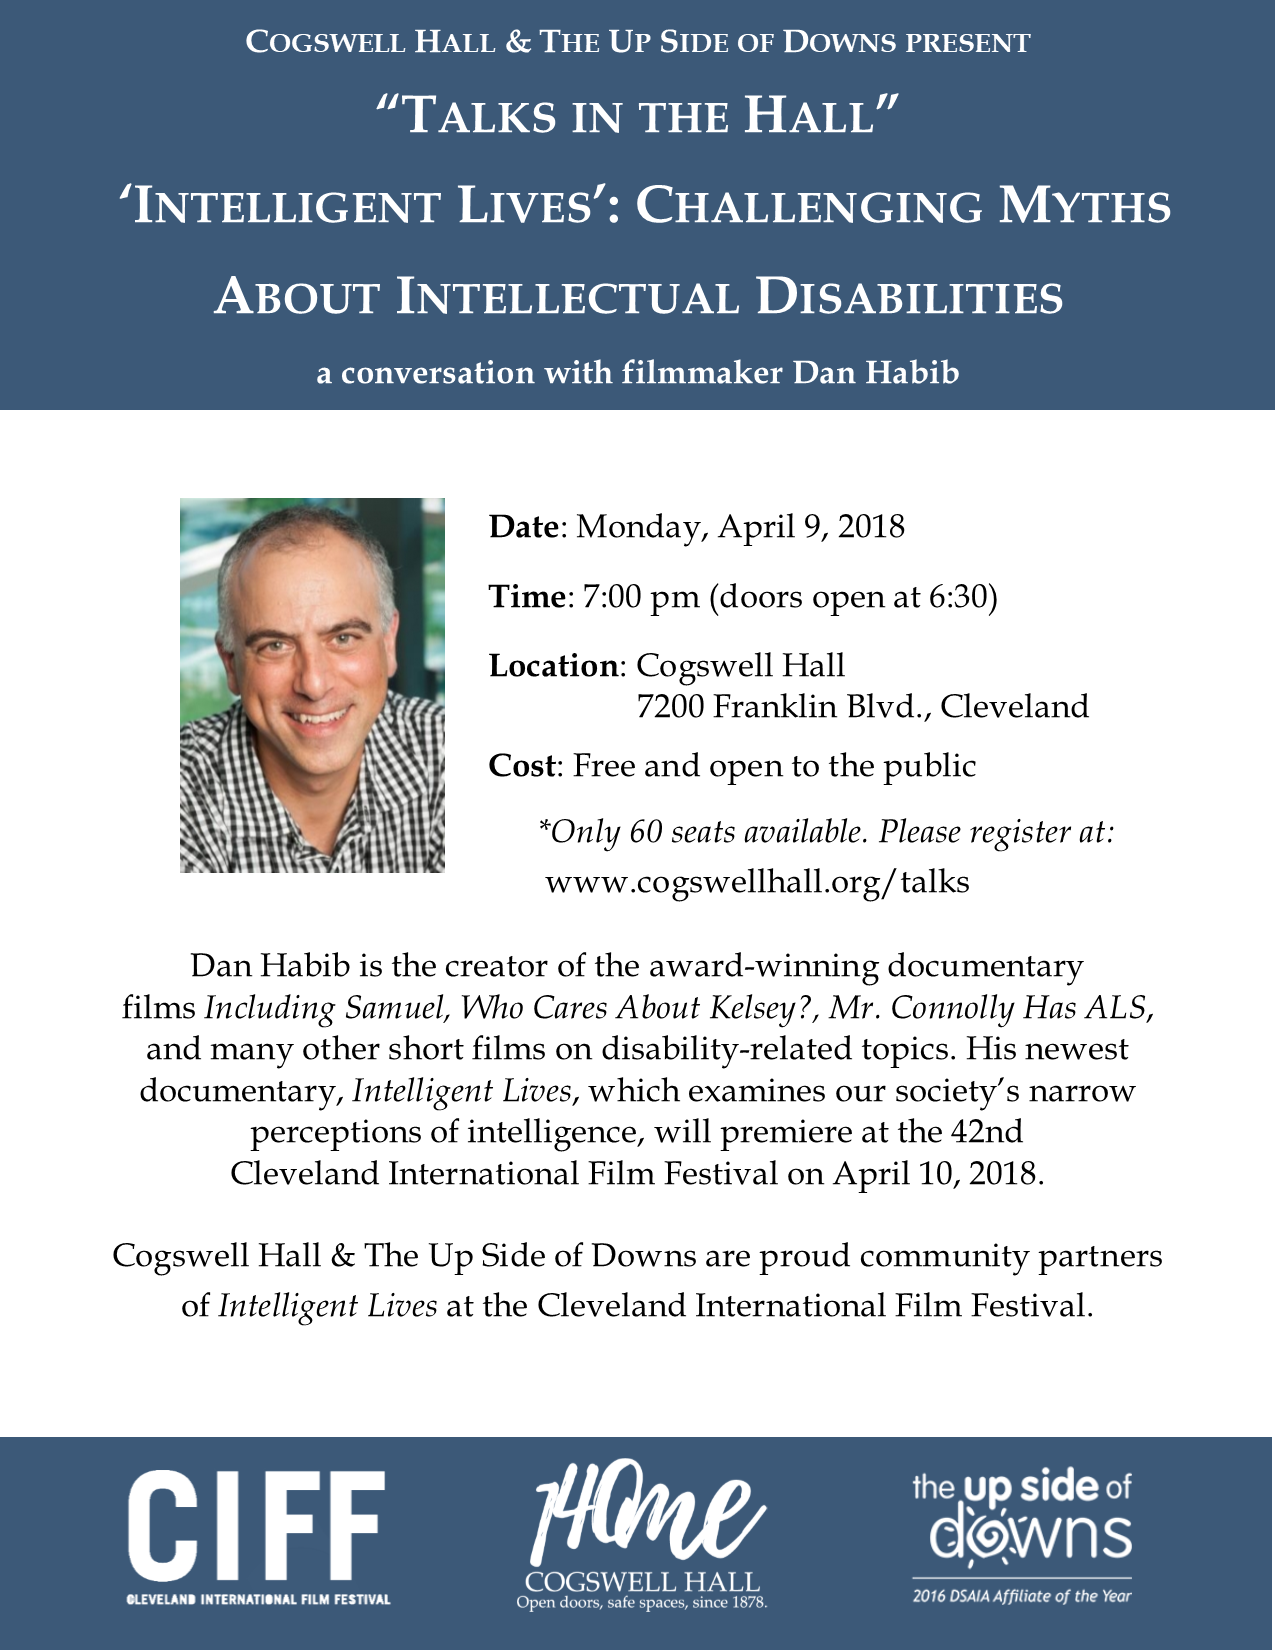 Safe dating for intellectual disabilities